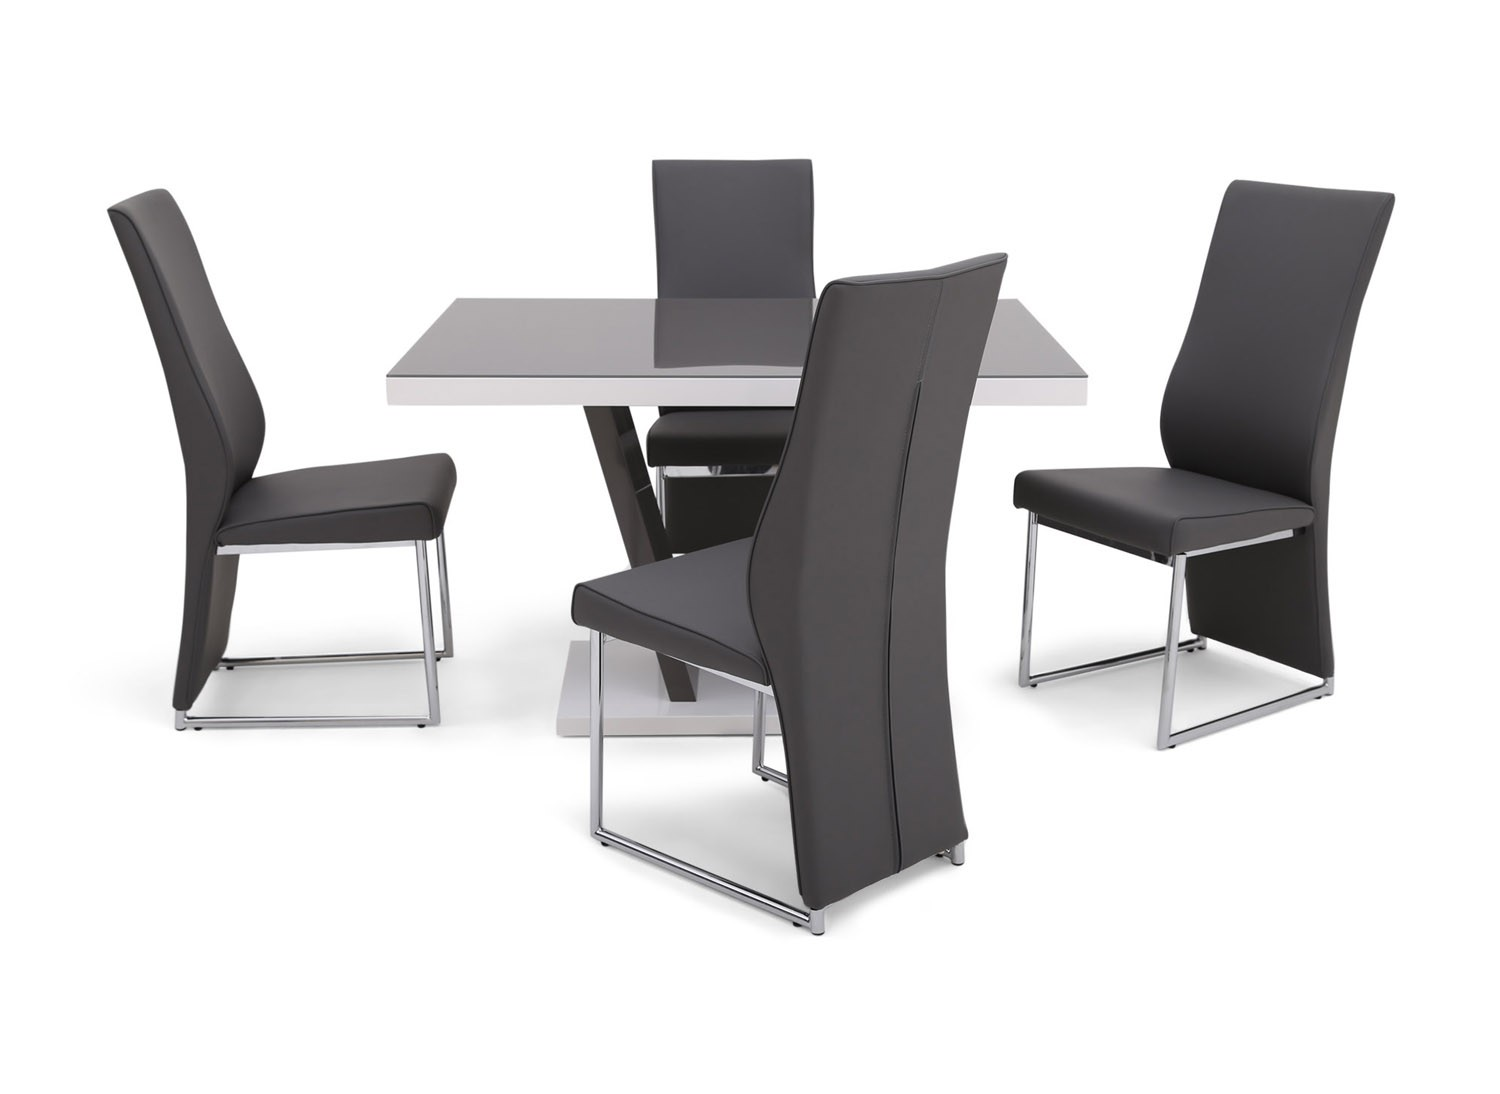 https://www.firstfurniture.co.uk/pub/media/catalog/product/f/a/fairmont_valentino_grey_high_gloss_dining_table_4_remo_black_chairs_1.jpg